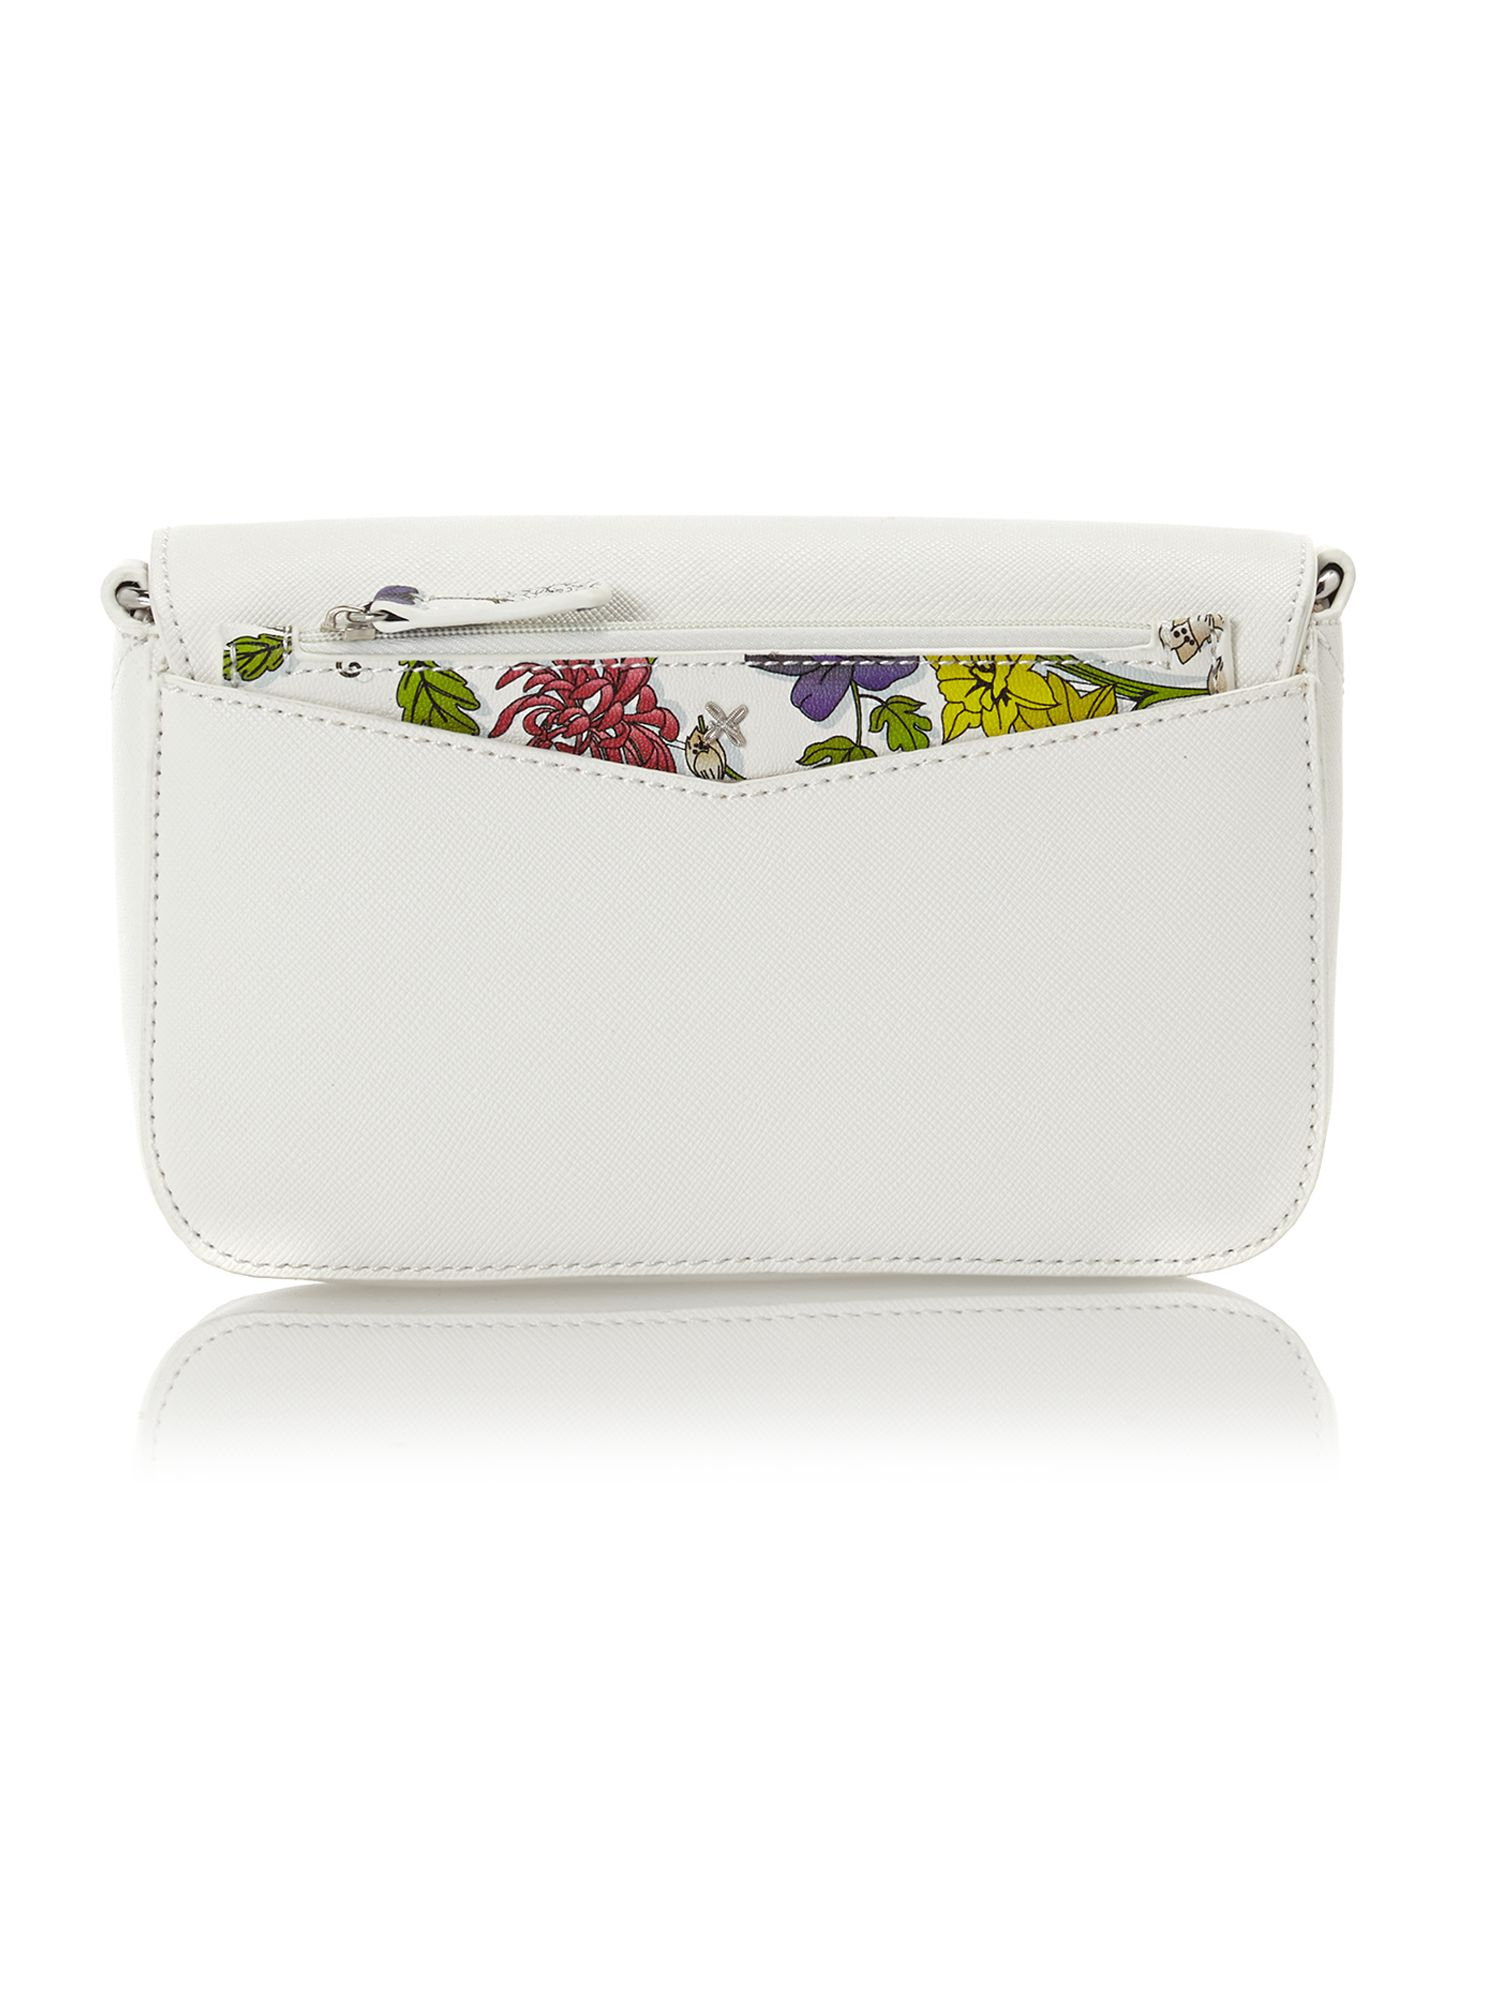 Perry white cross body bag